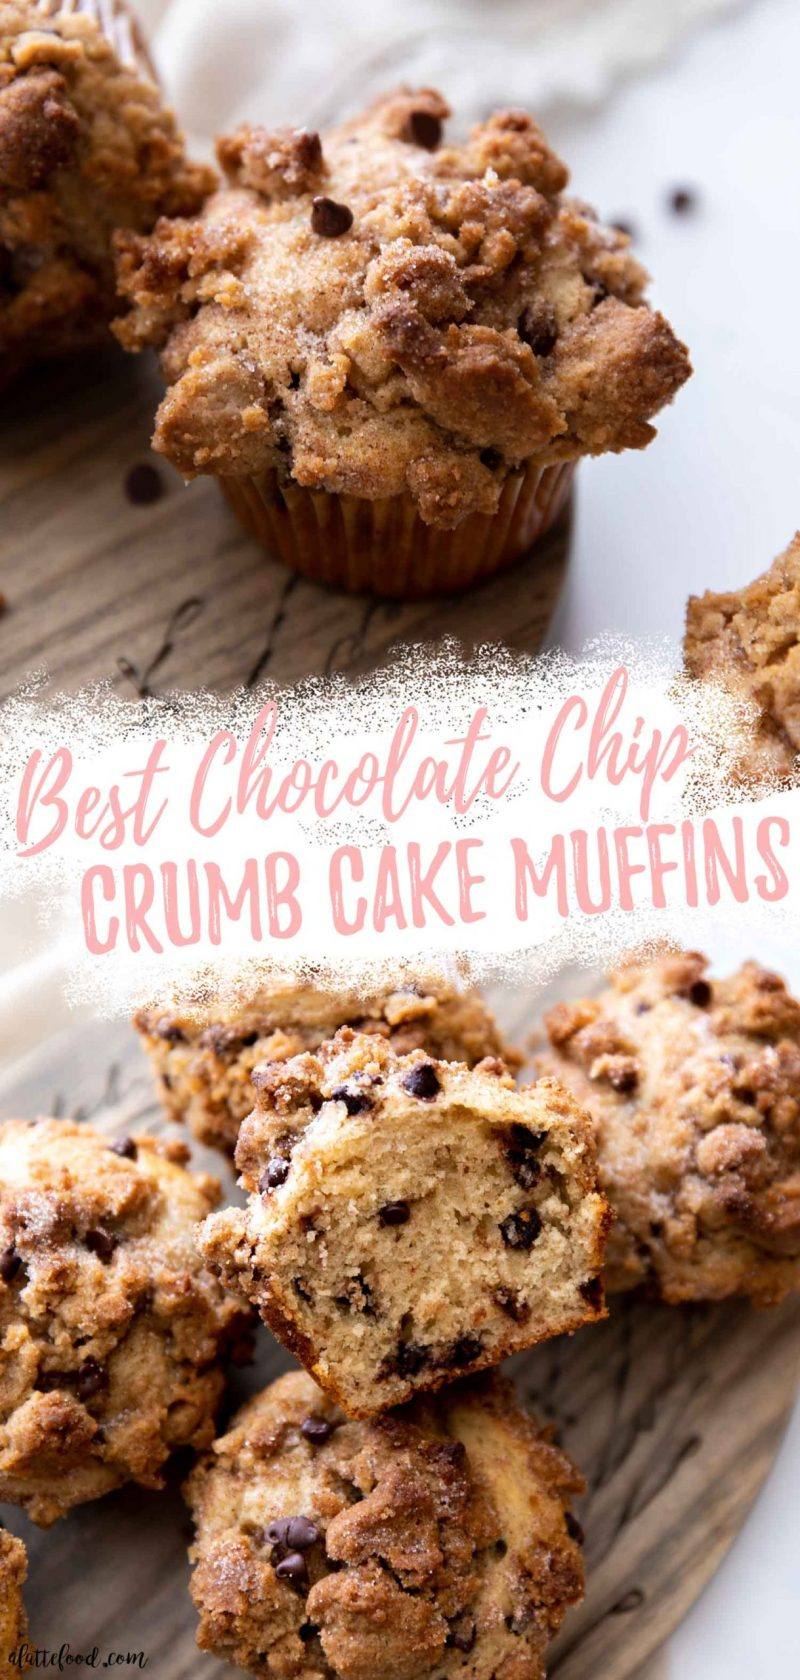 collage with text chocolate chip crumb cake muffins